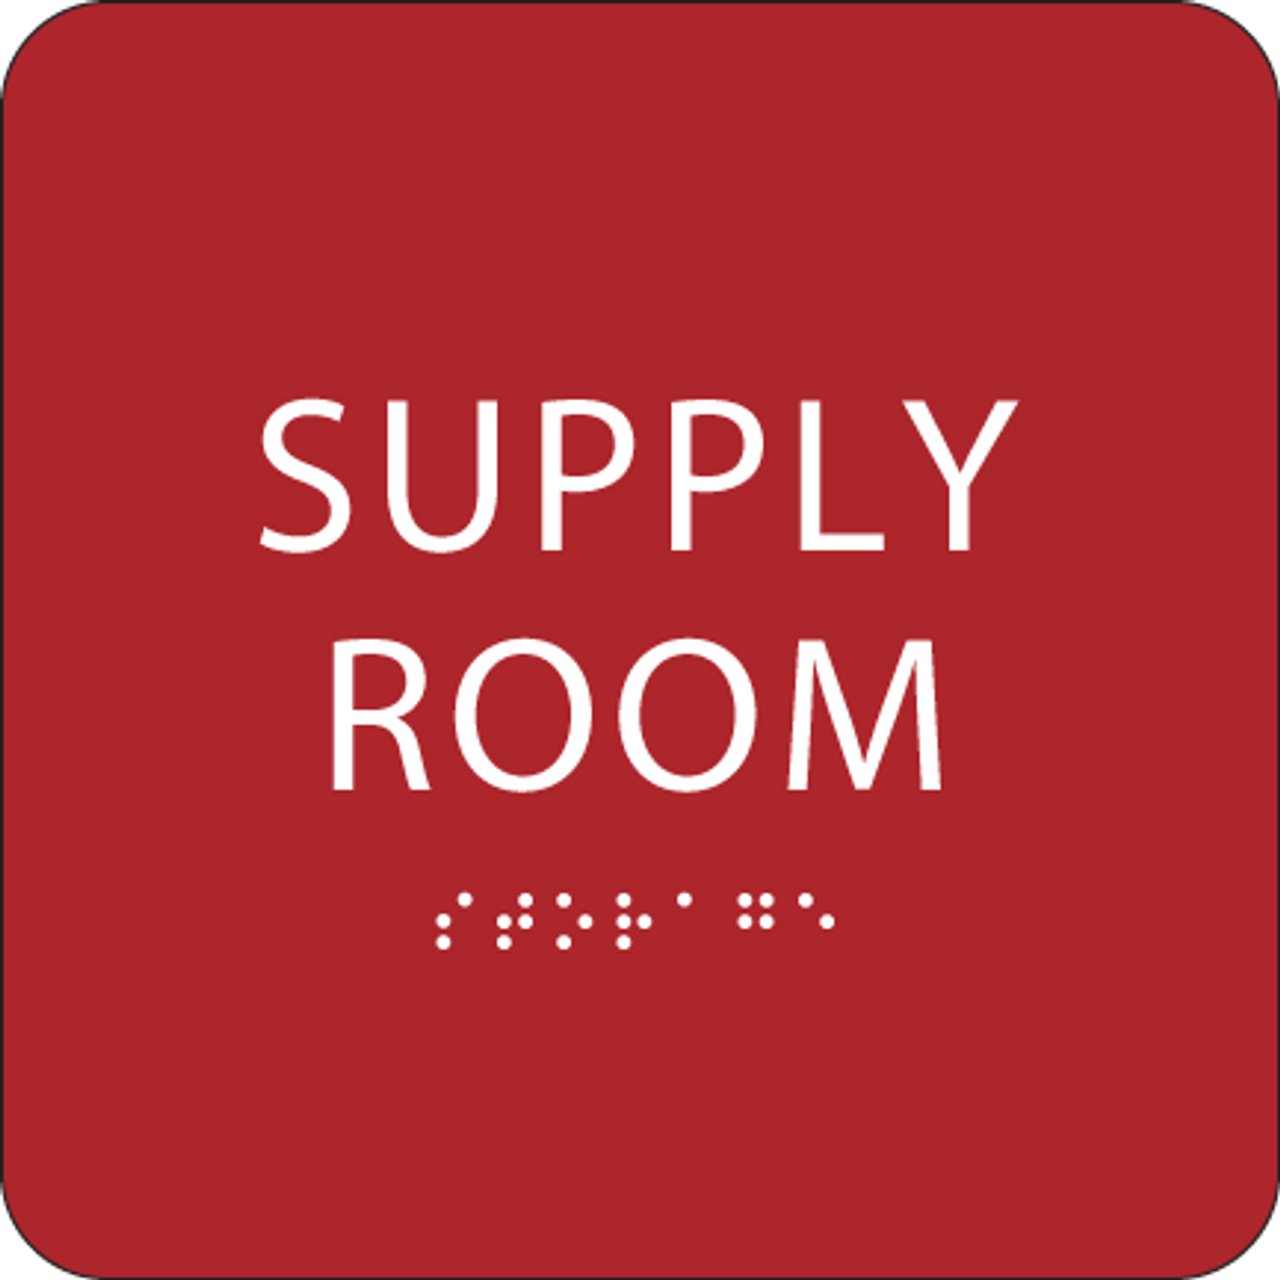 Red Supply Room Braille Sign